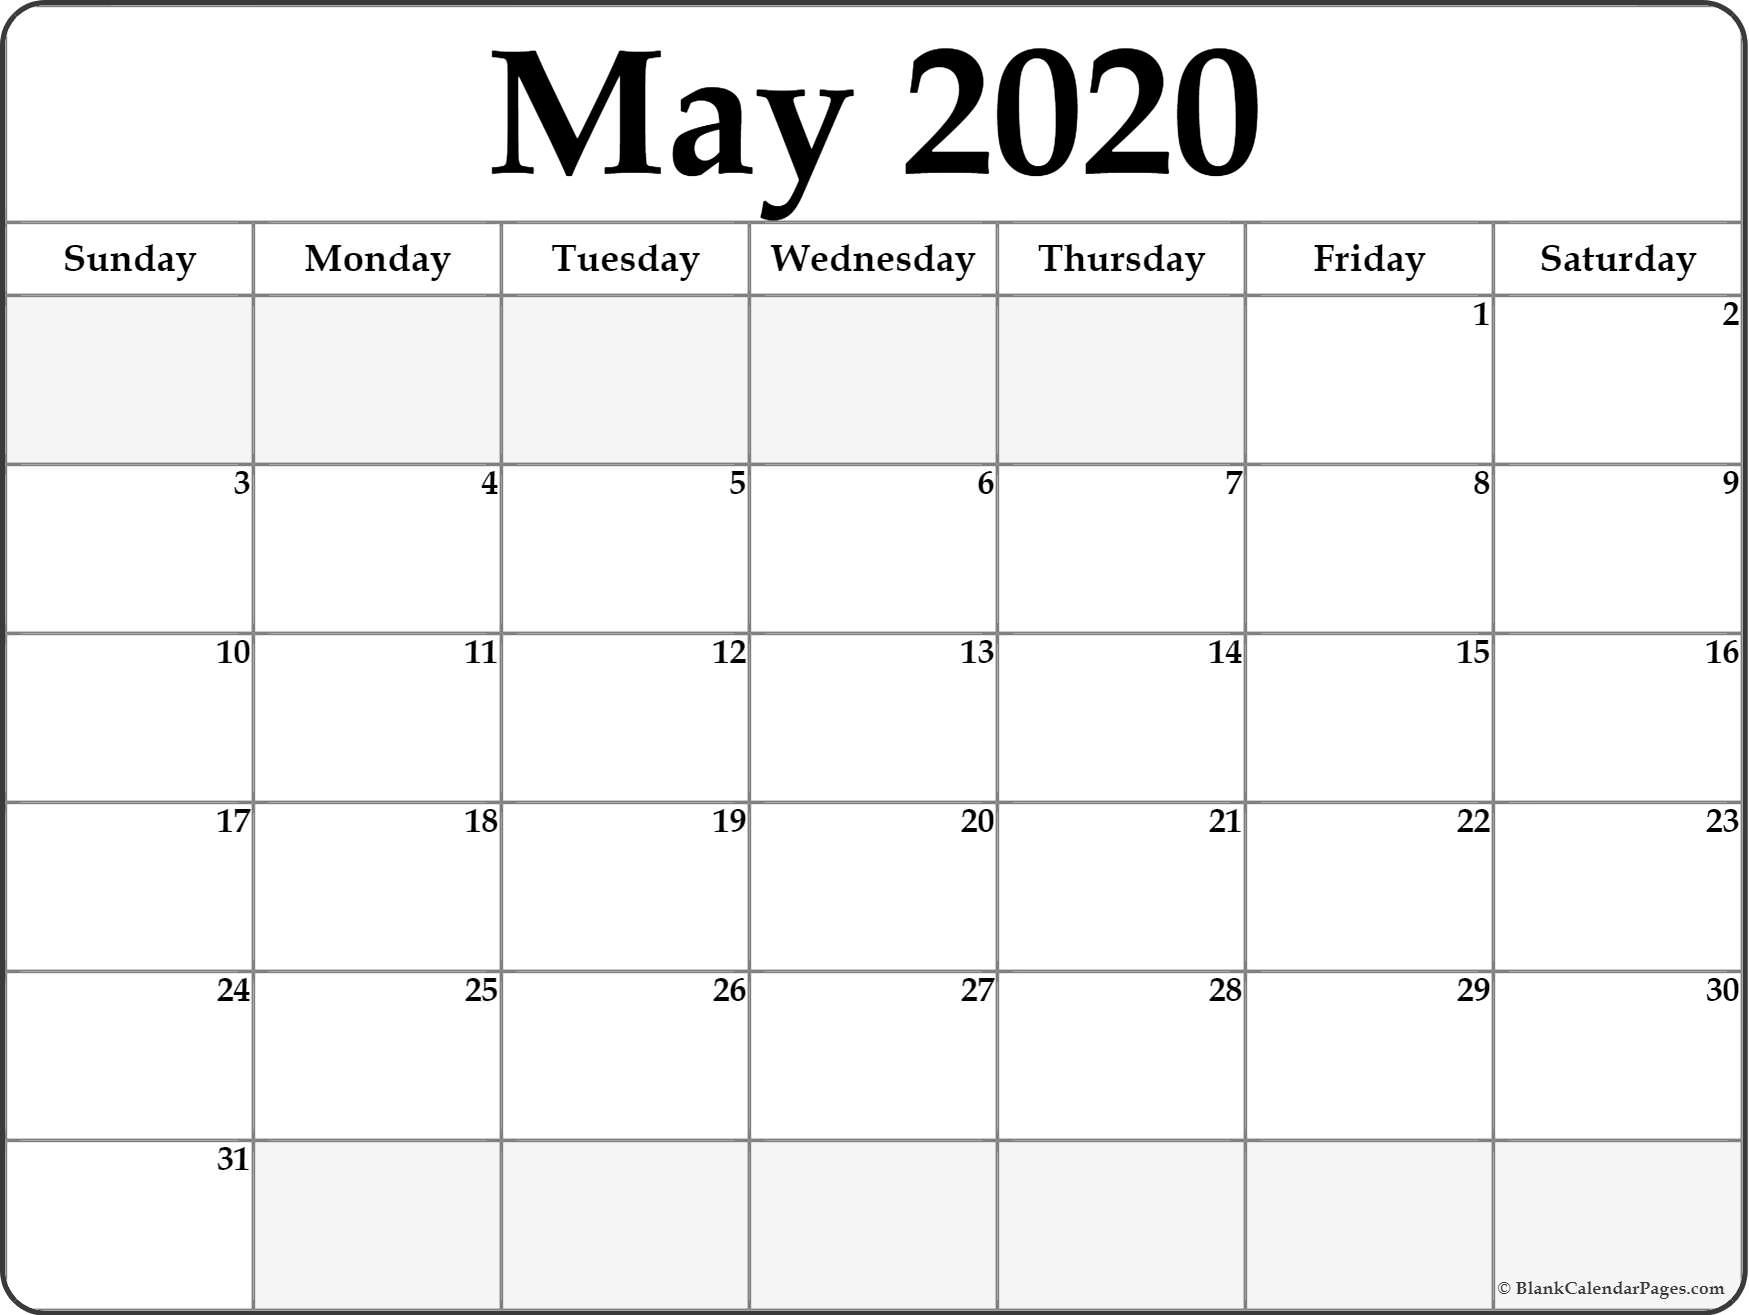 May 2020 Calendar | Free Printable Monthly Calendars How Can I Print Calendar To Fill In